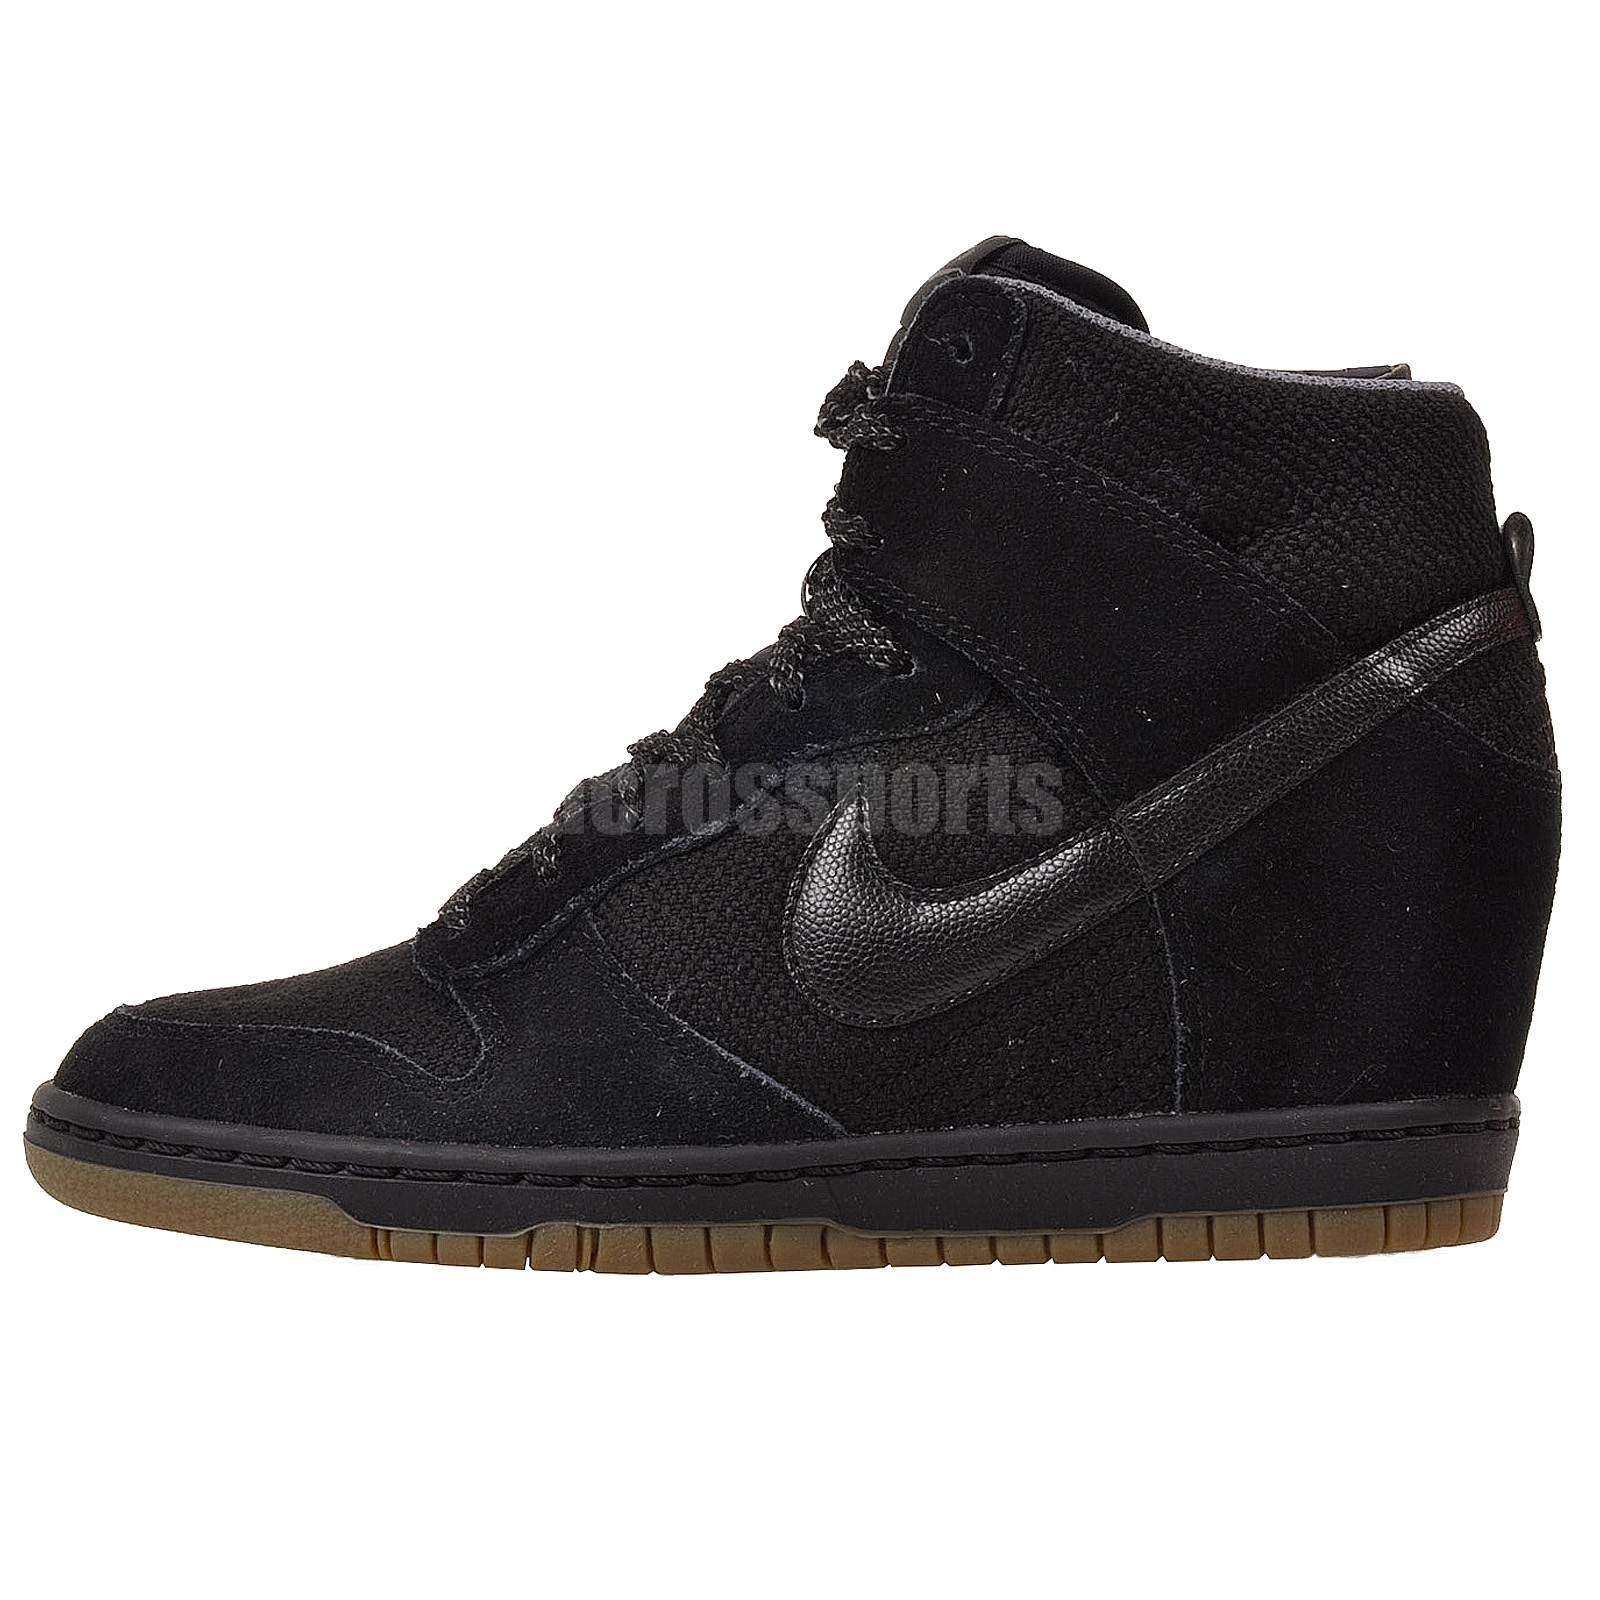 Unique Nike Wmns Dunk Sky Hi Print Snakeskin Womens Wedges Casual Shoes